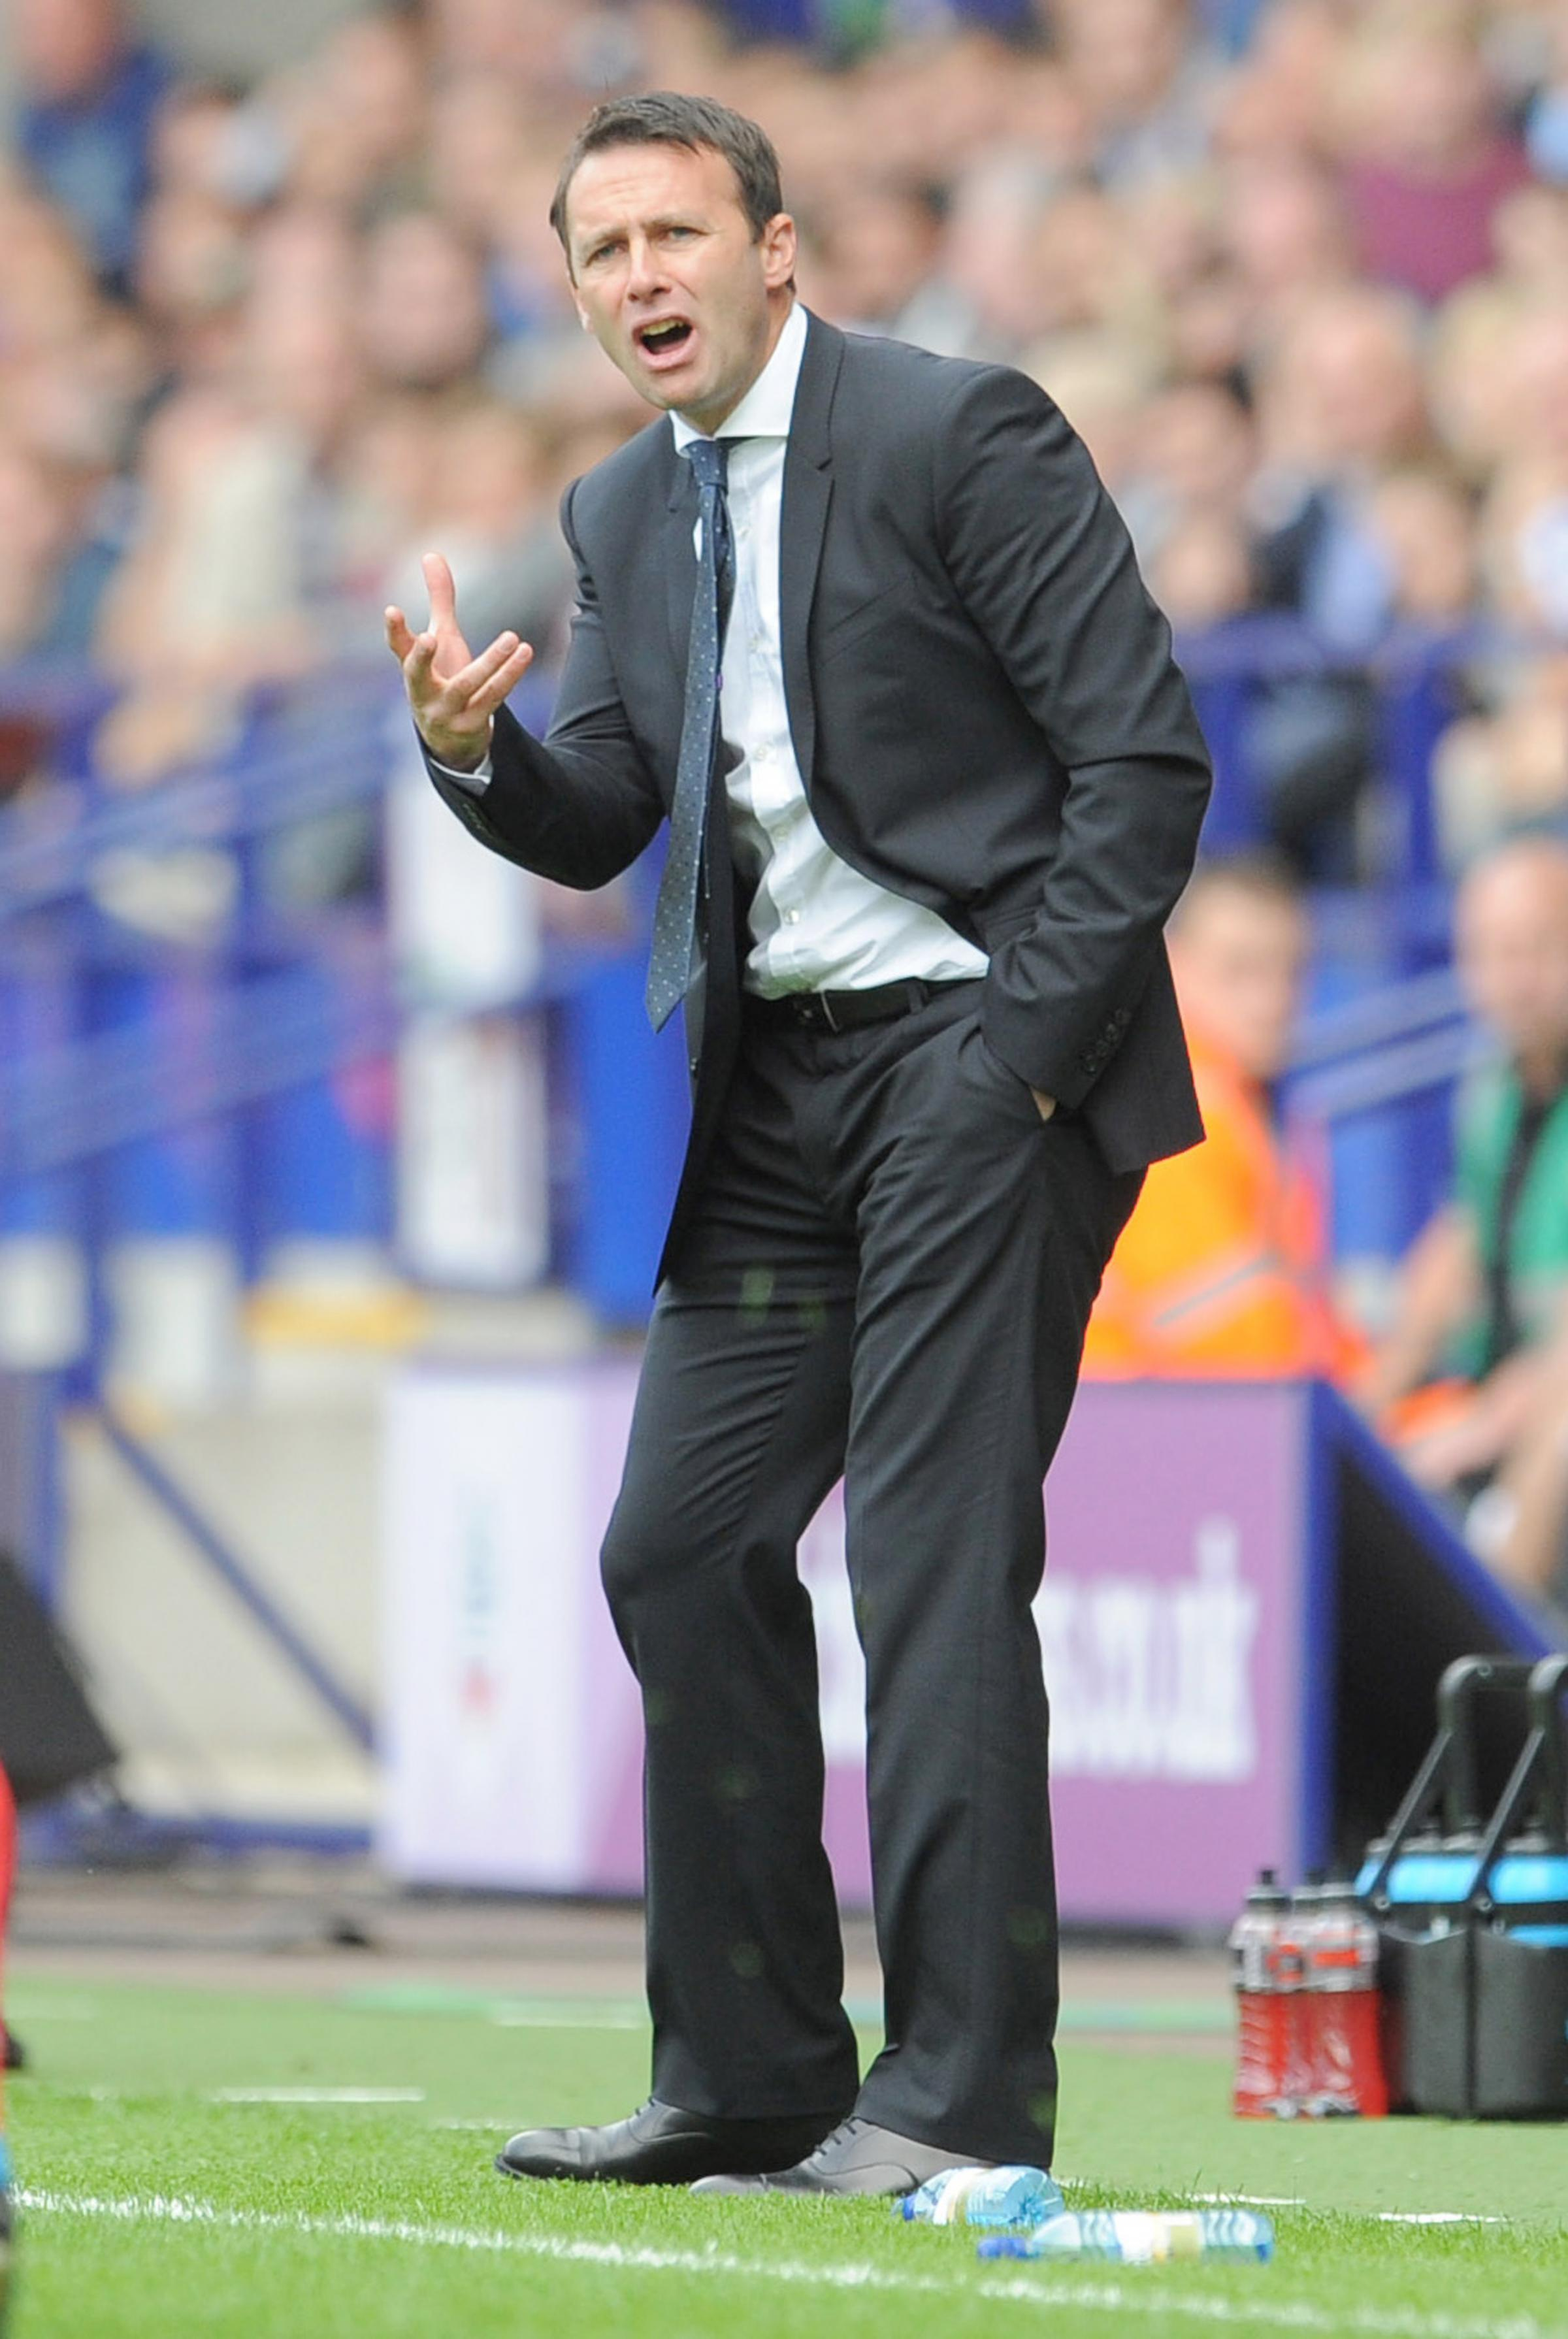 Dougie Freedman wants a return to the kind of performance that rocked Blackburn